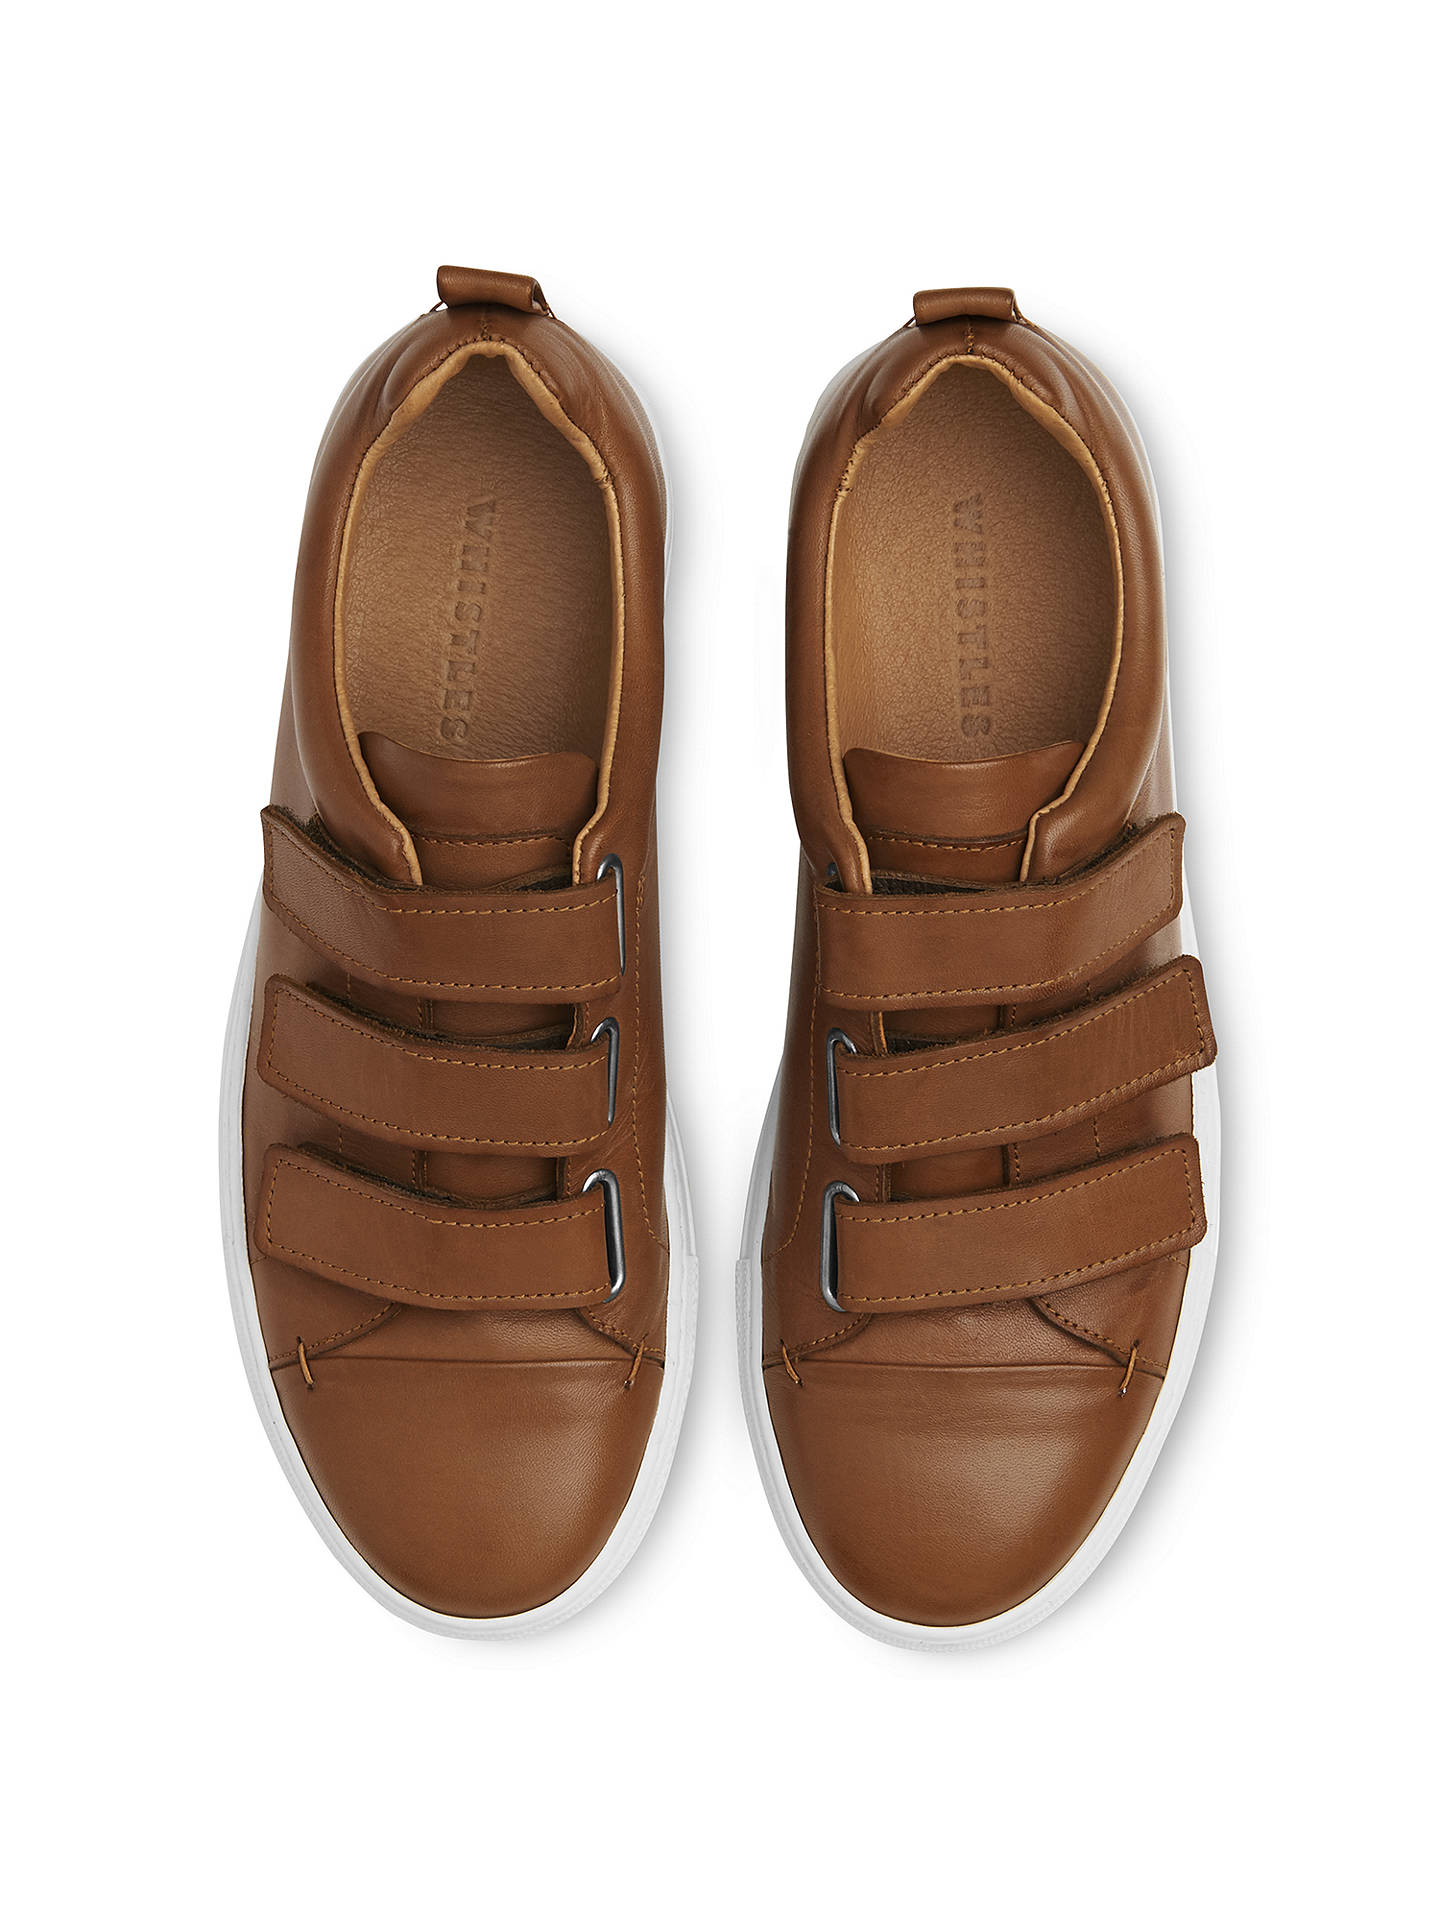 Buy Whistles Aith Flat Rip Tape Trainers, Tan Leather, 3 Online at johnlewis.com